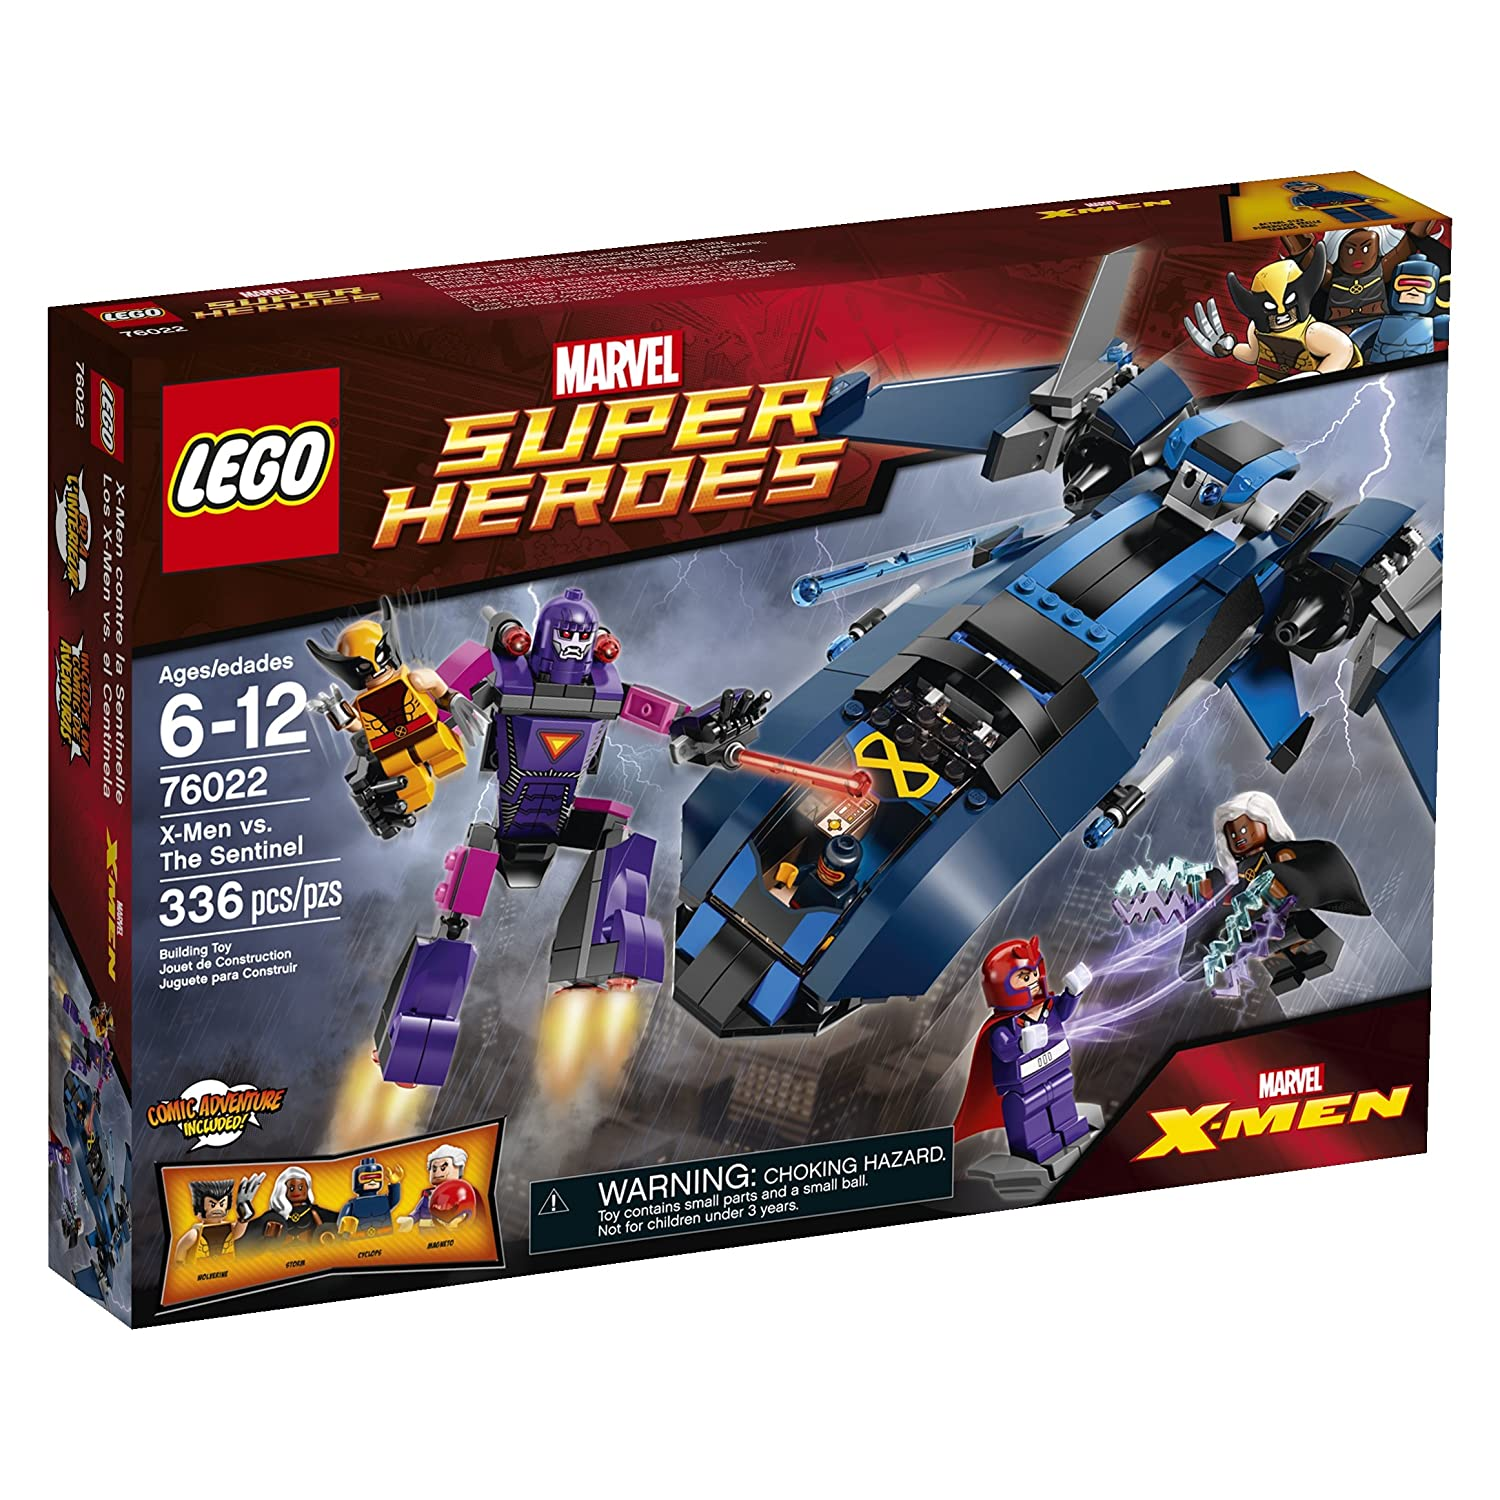 5d361f6df1 Amazon.com: LEGO Superheroes X-Men vs. The Sentinel Building Set 76022  (Discontinued by manufacturer): Toys & Games